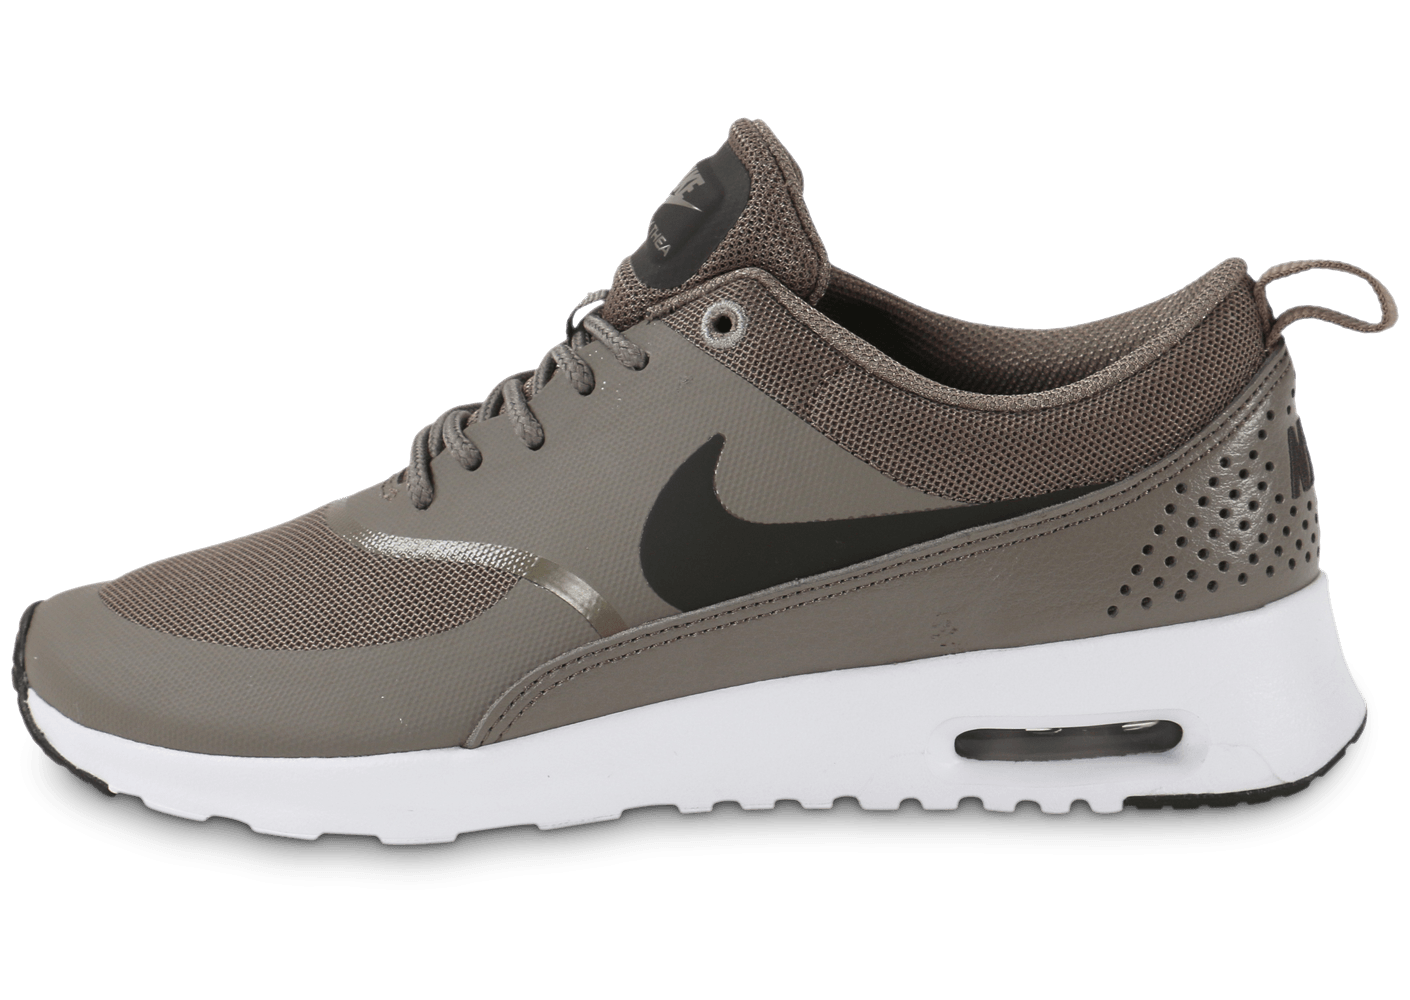 nike air max thea iron chaussures chaussures chausport. Black Bedroom Furniture Sets. Home Design Ideas